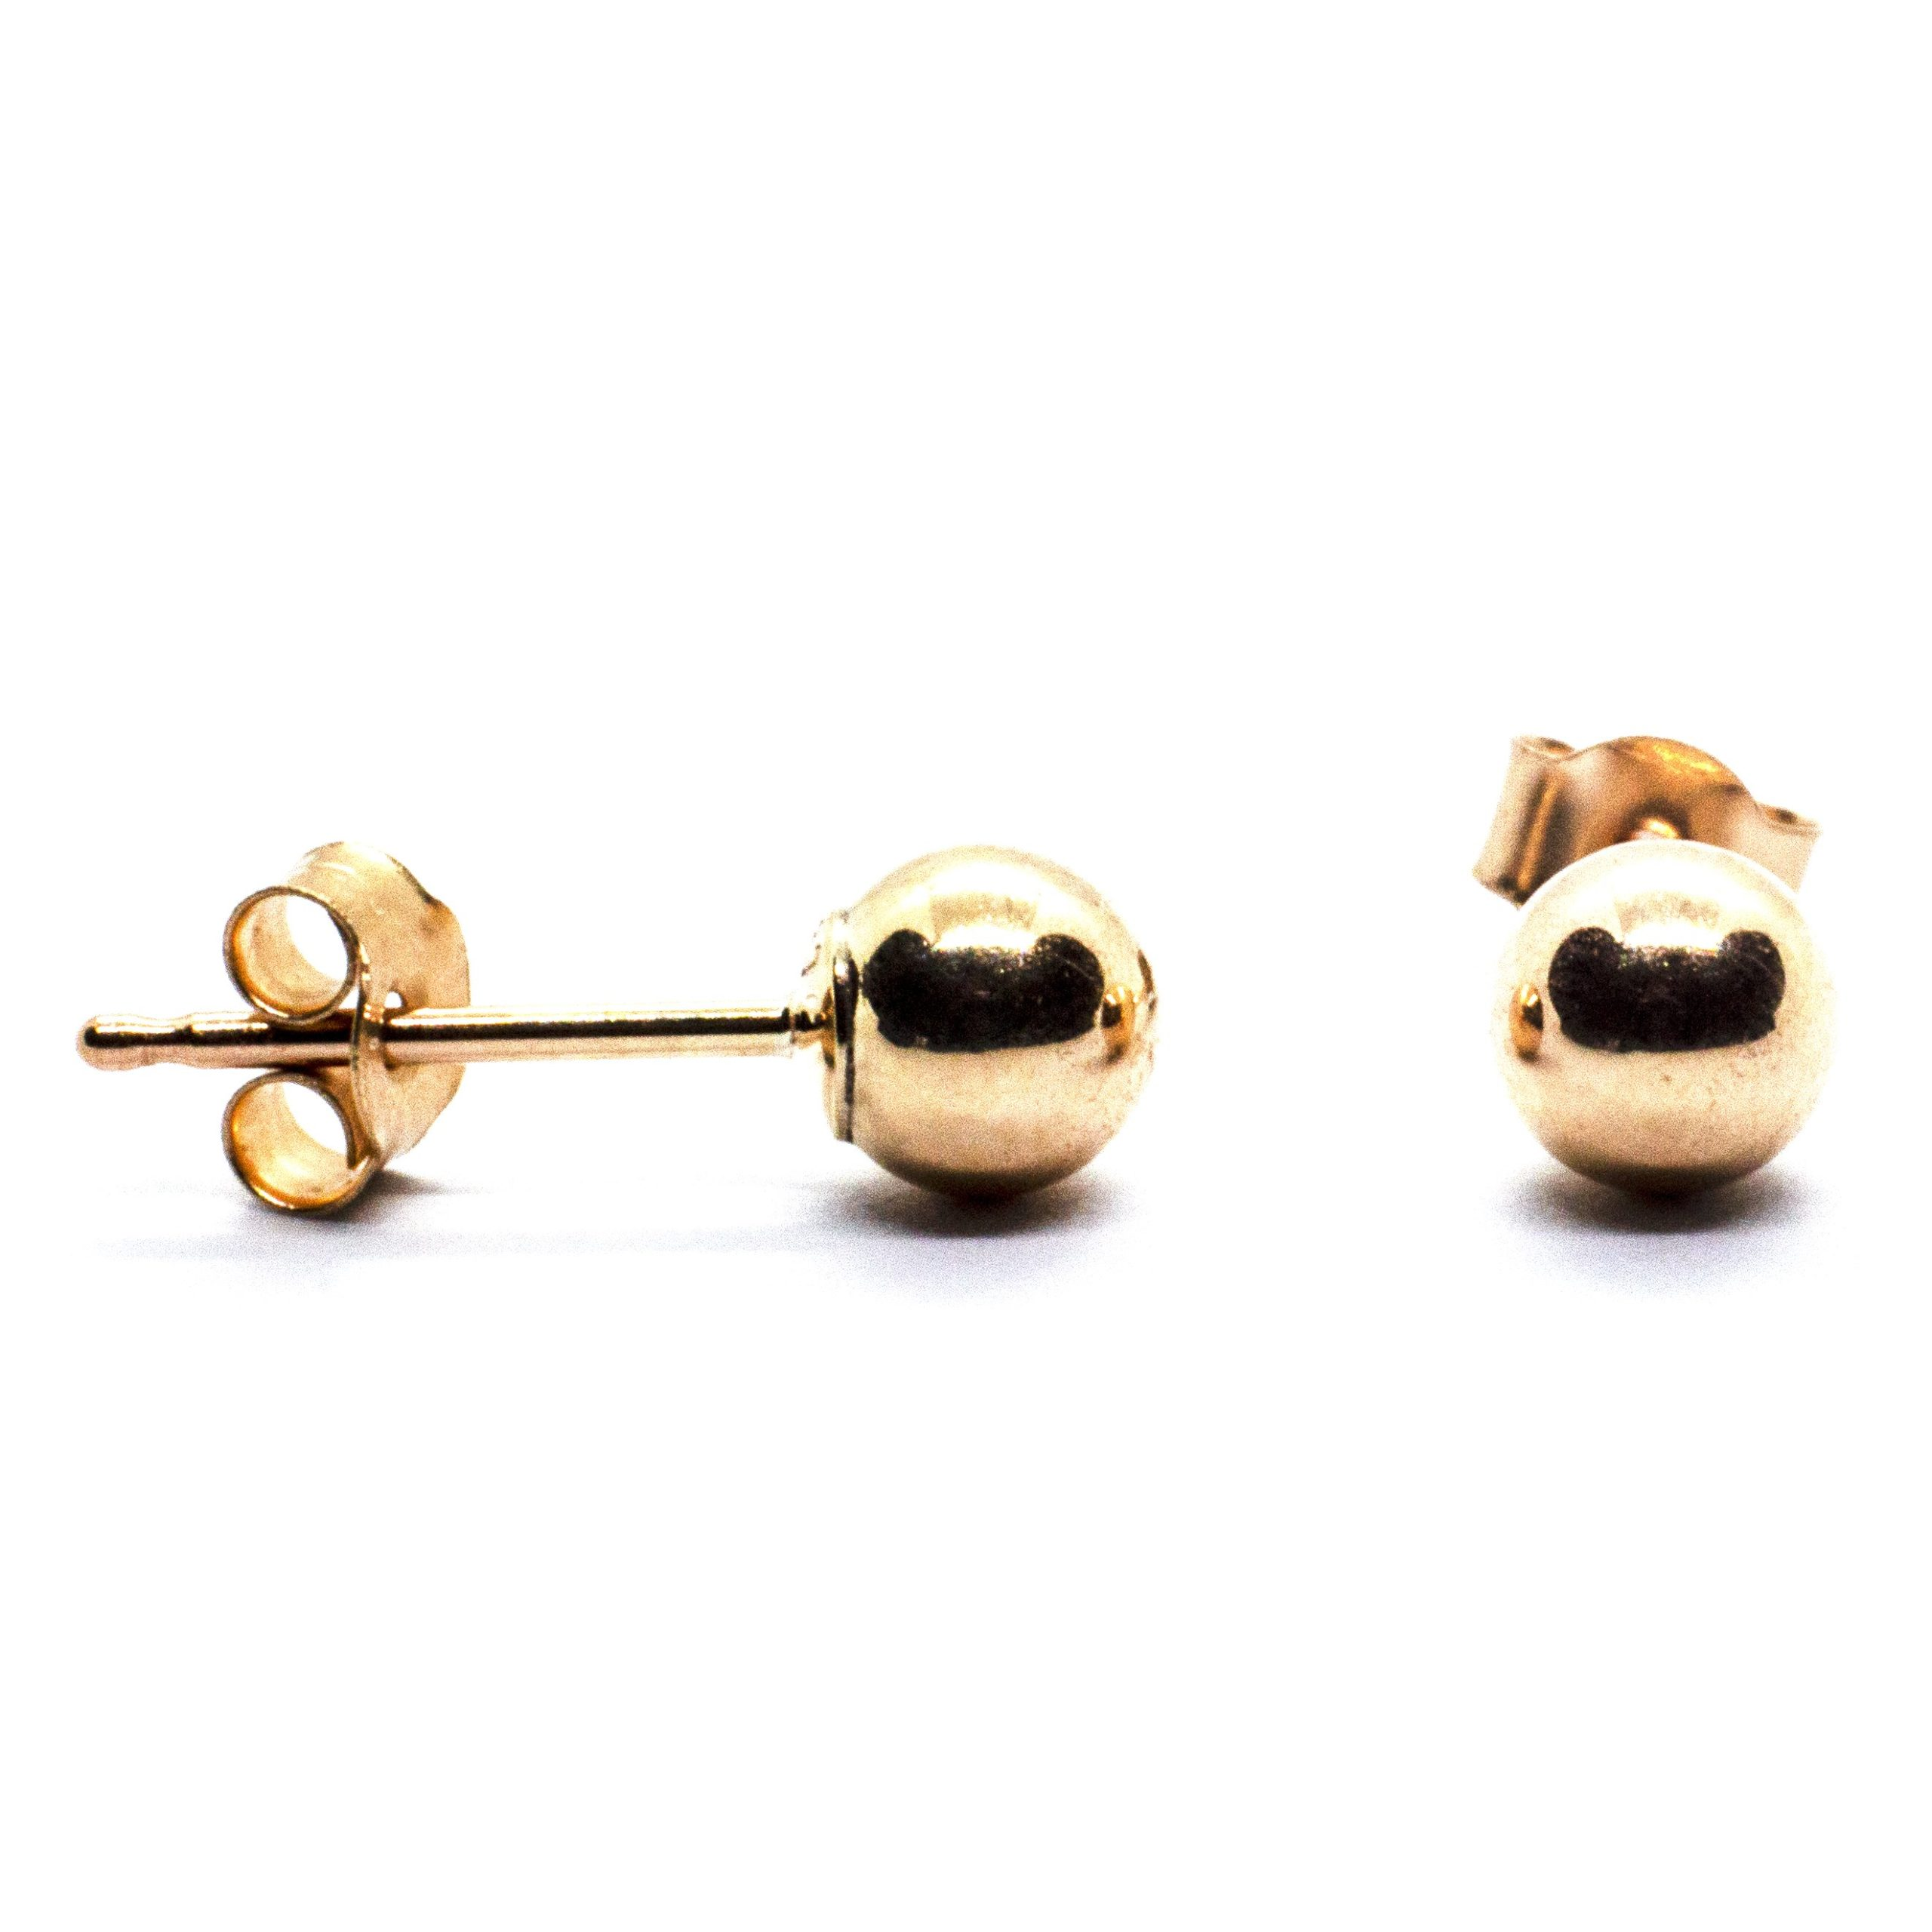 4mm 9ct gold ball earrings